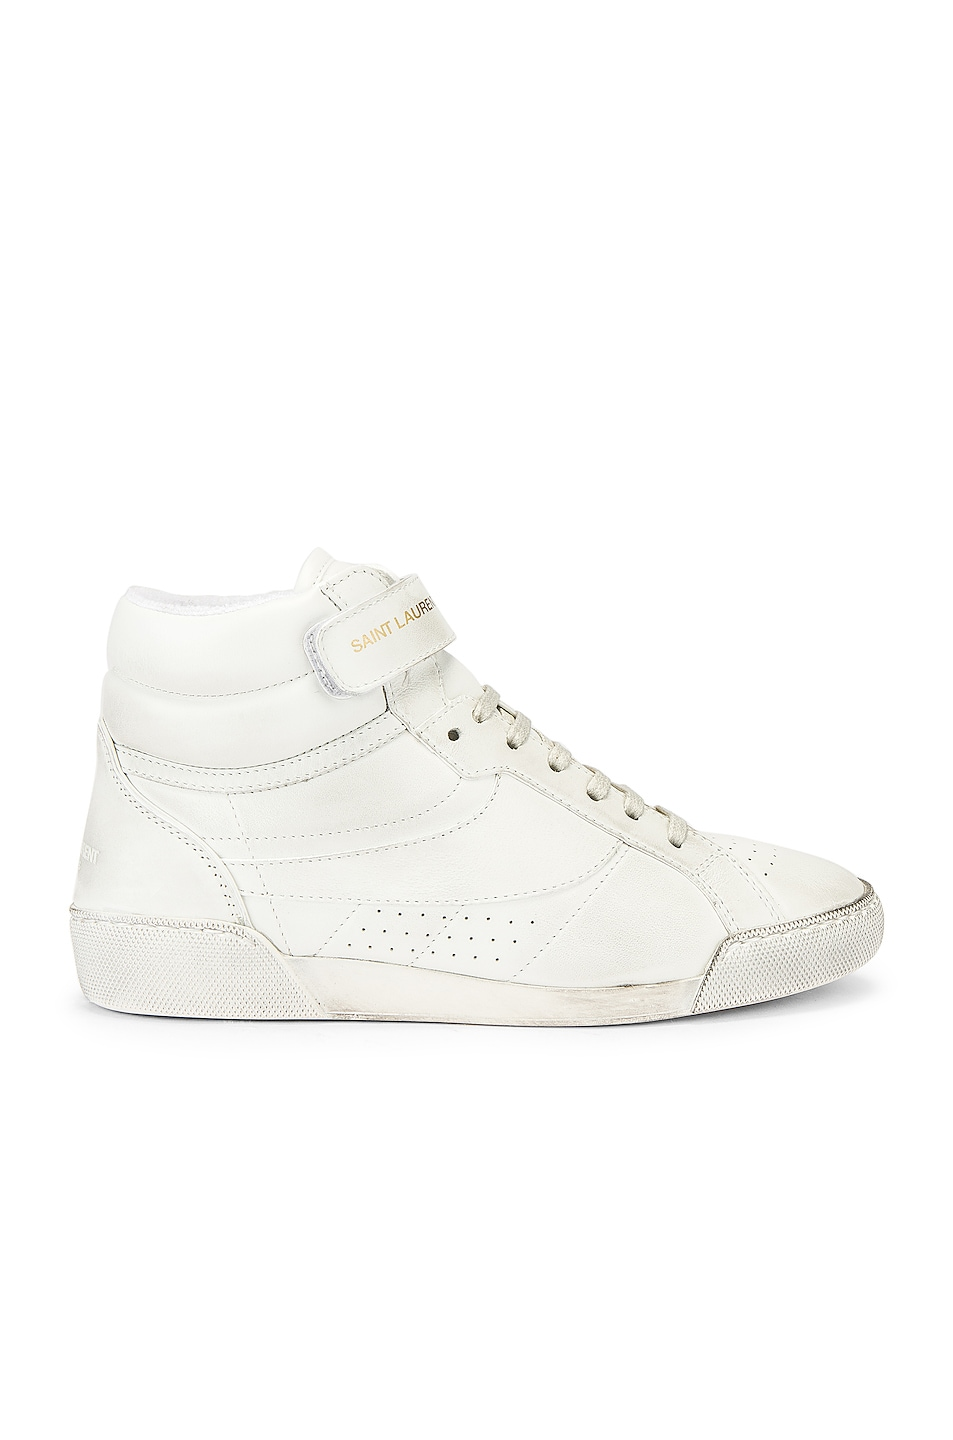 Image 1 of Saint Laurent High Top Sneaker in White